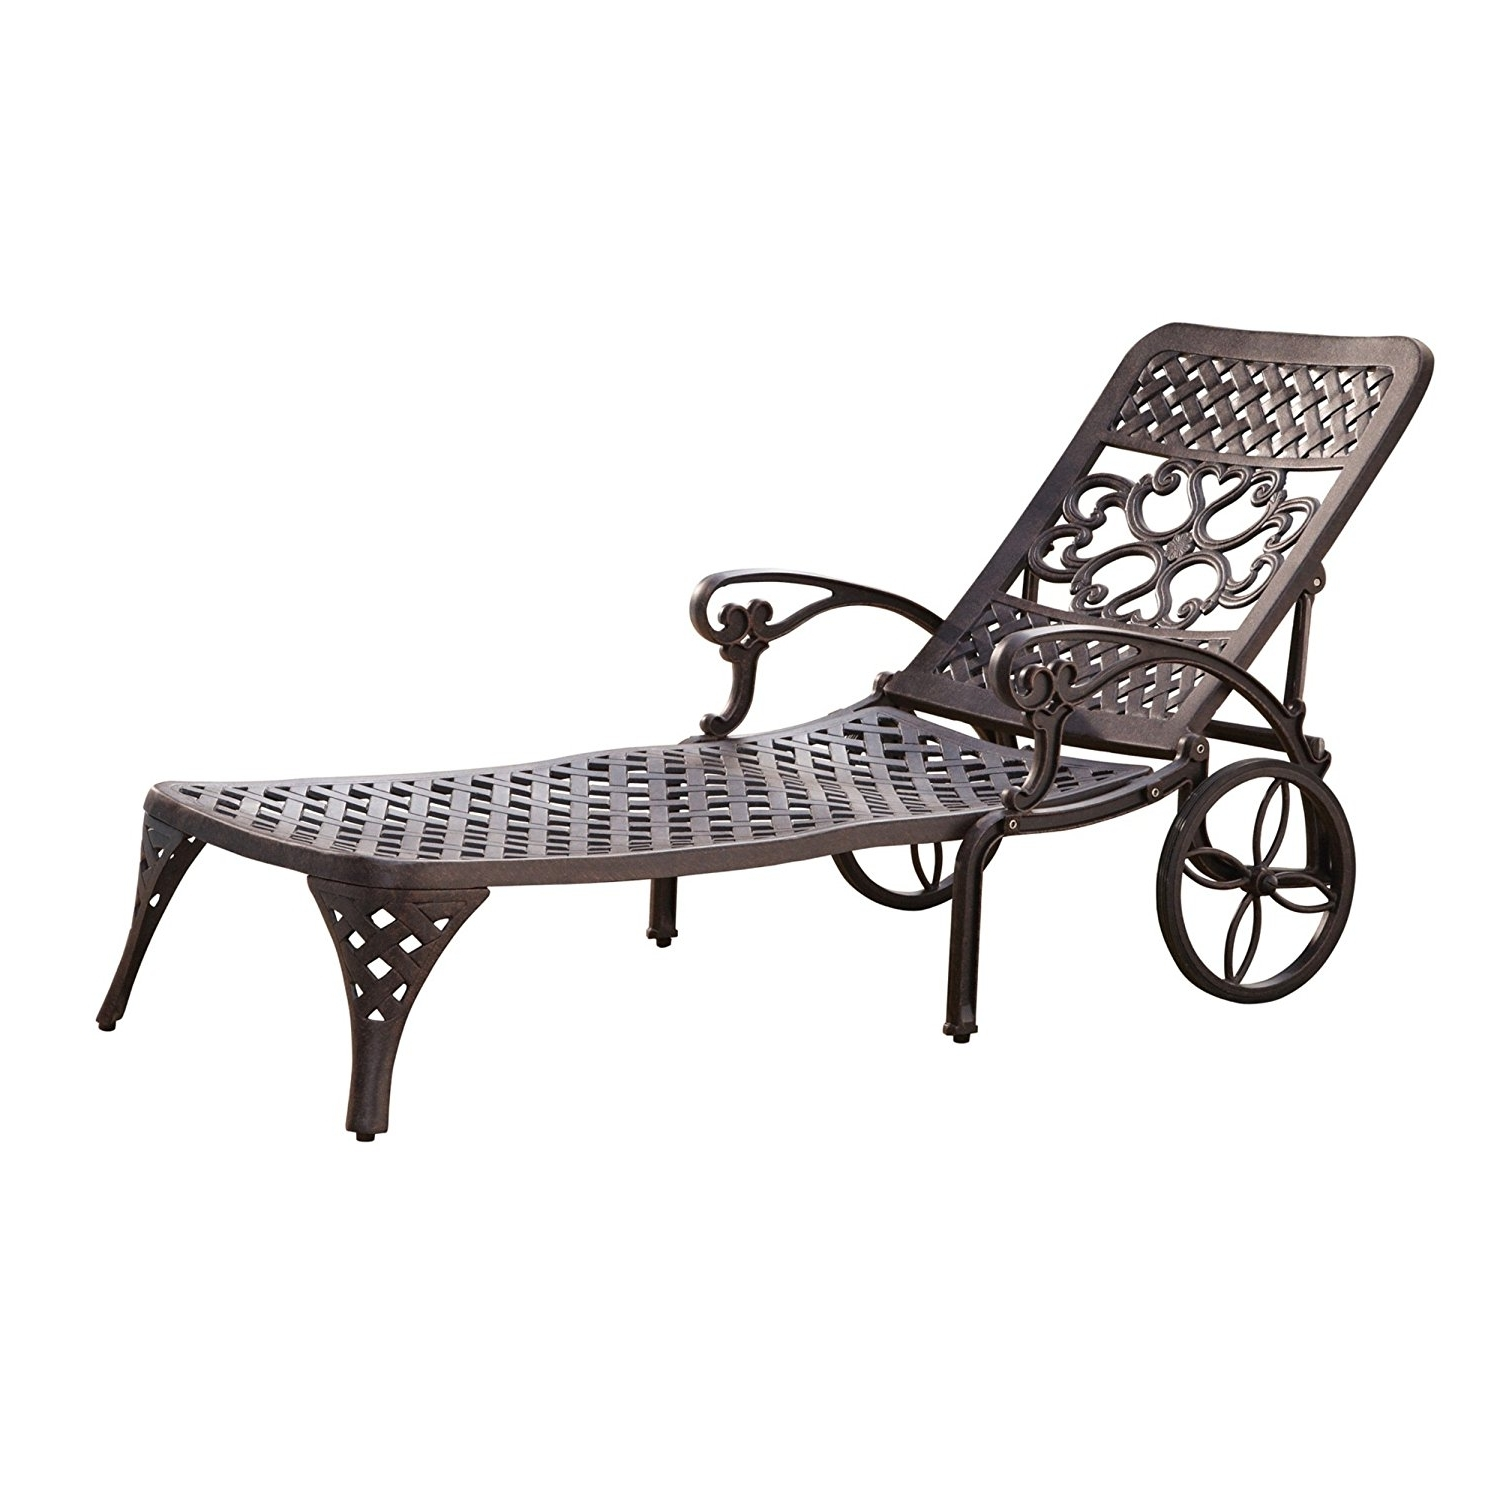 Recent Outdoor Chaise Lounge Chairs Regarding Amazon : Home Styles Biscayne Chaise Lounge Chair, Black (View 13 of 15)